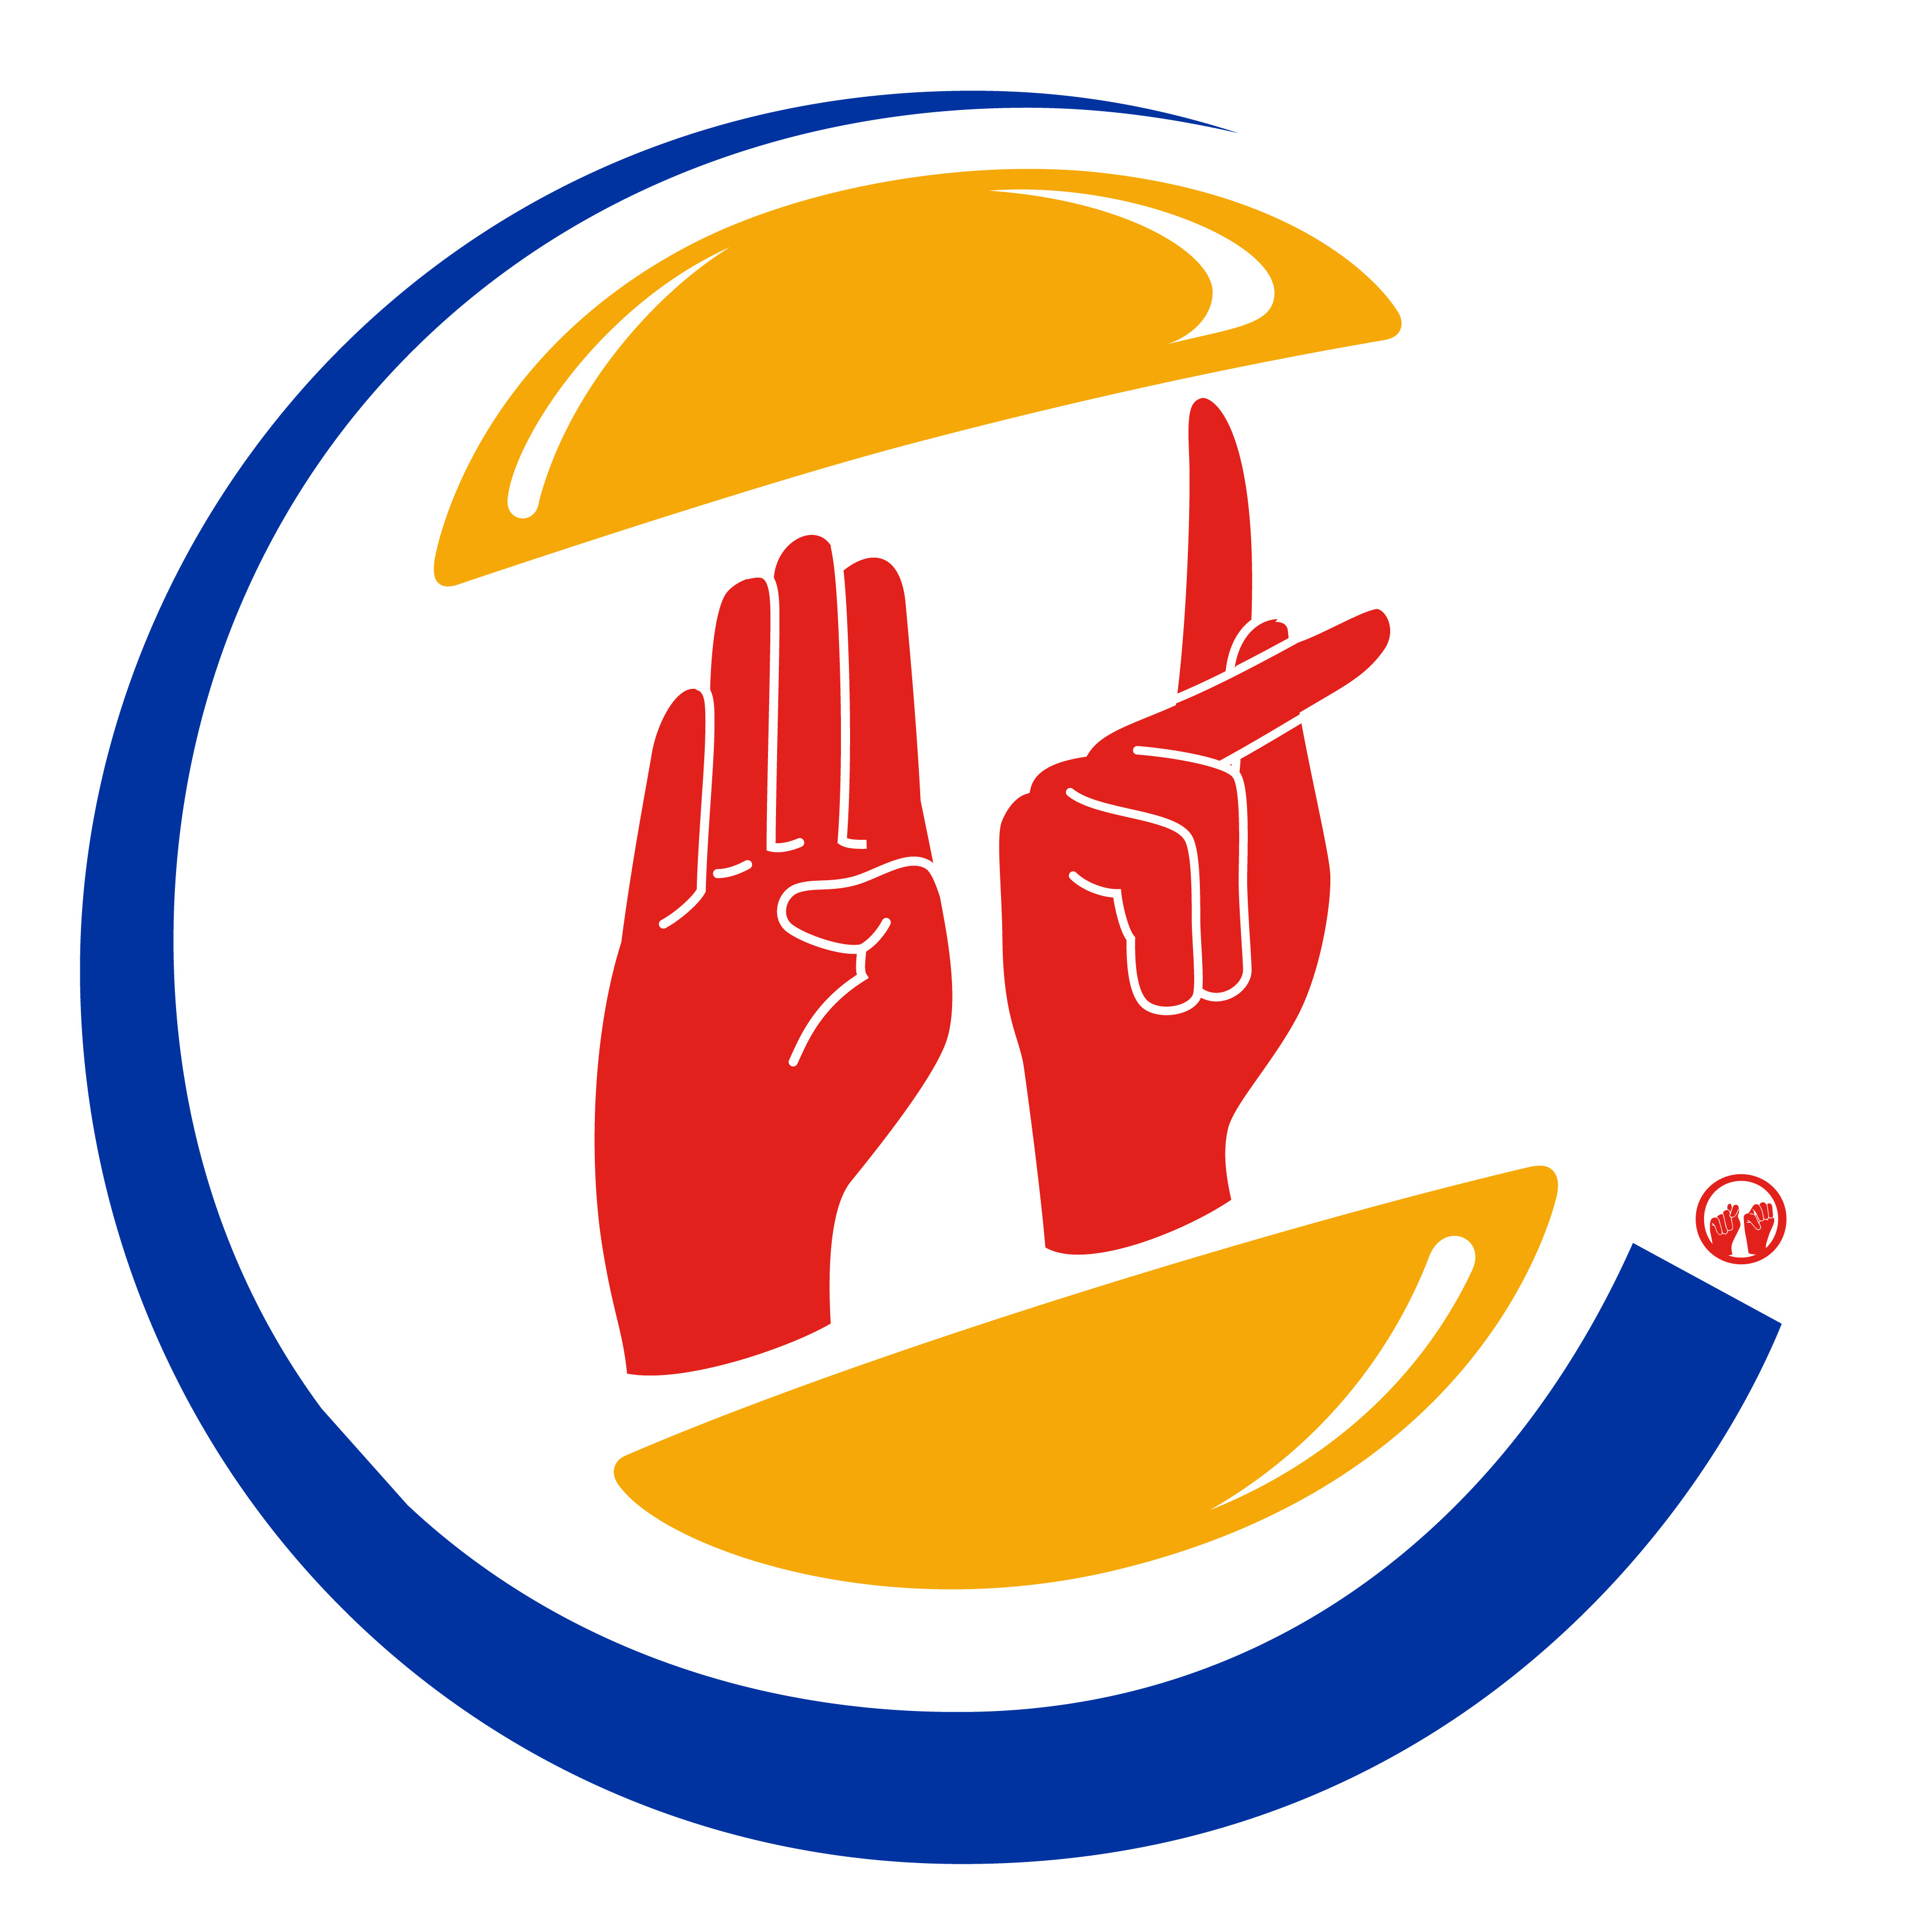 To Celebrate National American Sign Language Day The BURGER KINGR Brand King Is Breaking His Silence